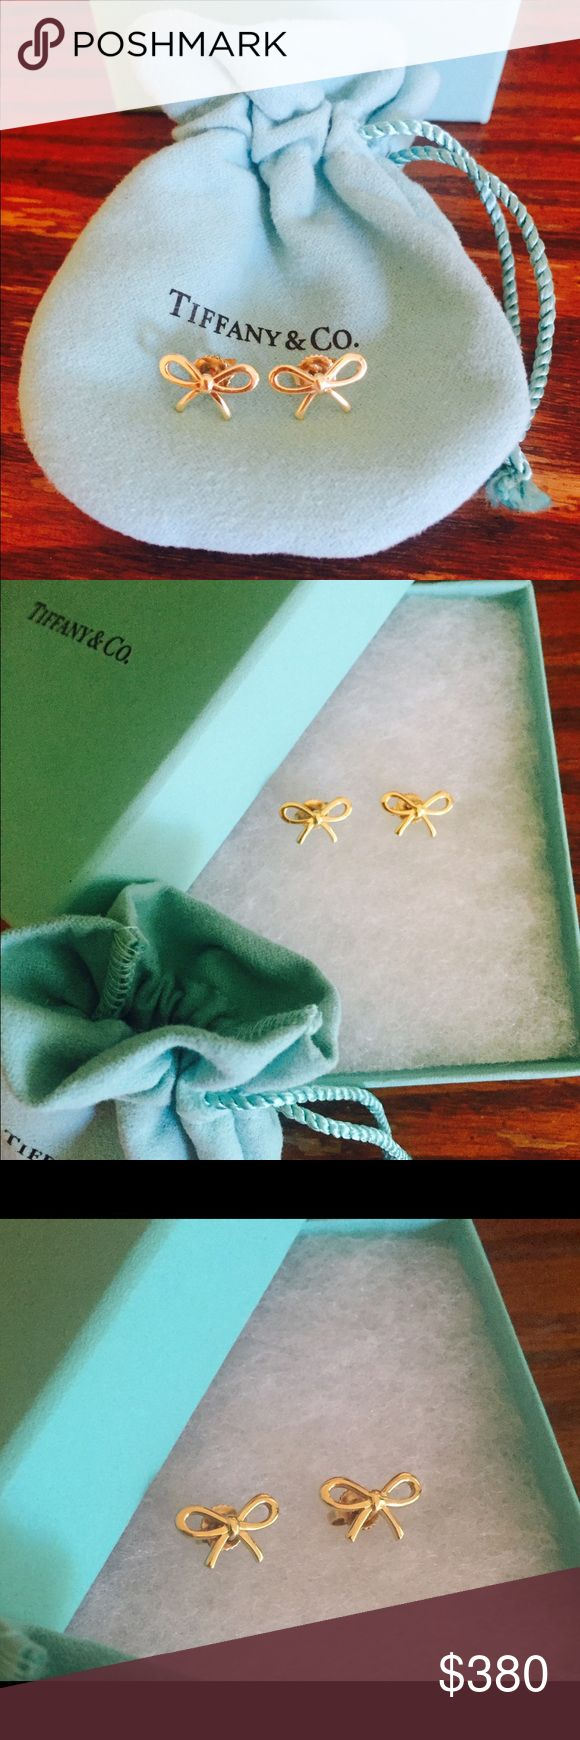 Authentic Tiffany Bow Earrings 18K Yellow Gold Tiffany Bow Earrings. The cutest earrings ever! Absolutely my favorite! Worn very gently! You will love them forever!:) very sweet and elegant earrings!:) Tiffany & Co. Jewelry Earrings